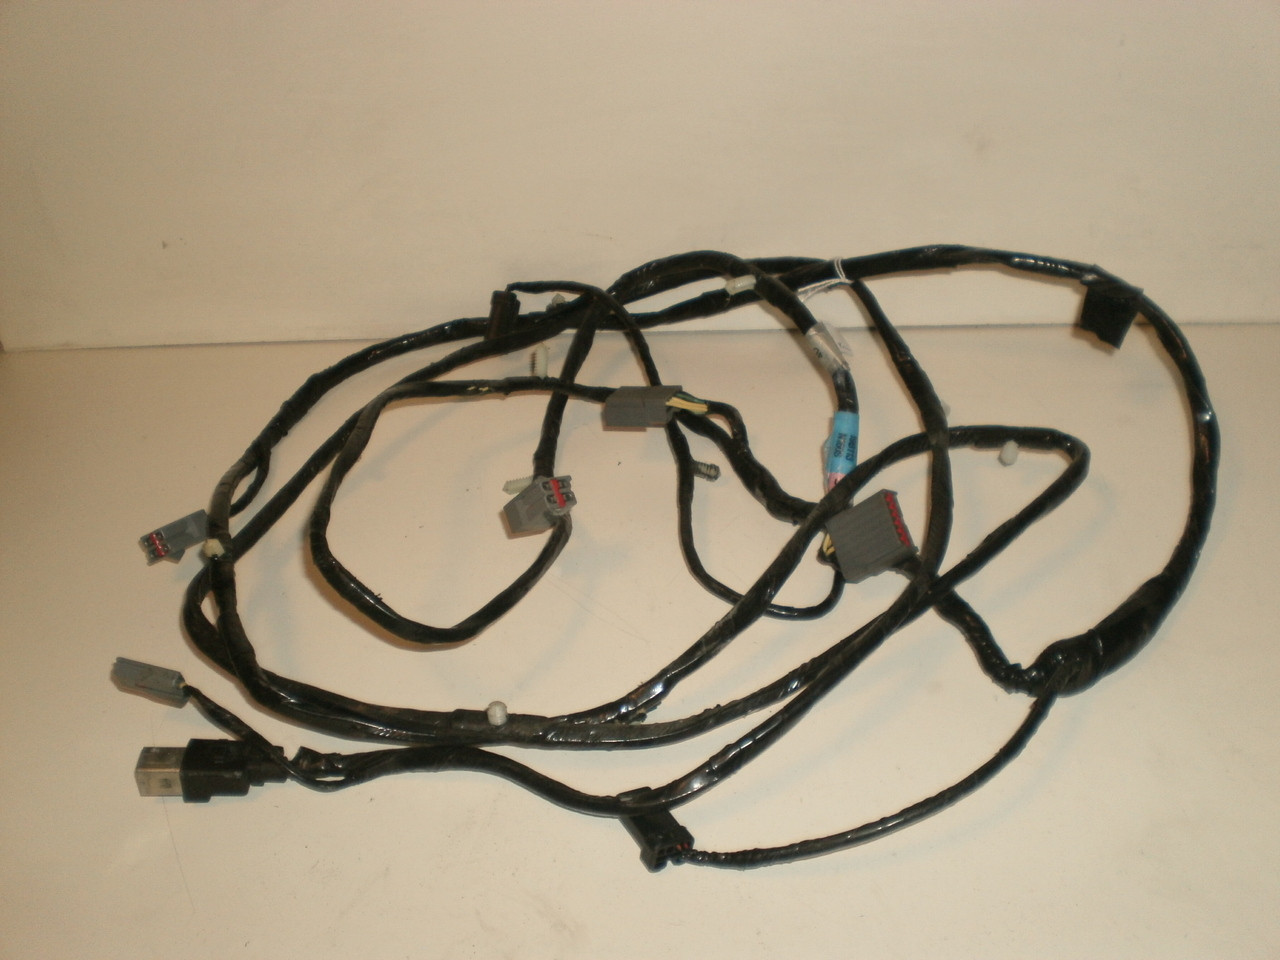 1994 2004 Ford Mustang Rear Mach 460 Amps Amplifiers Sterio 1995 Wiring Harness Stereo With Cd Larger More Photos